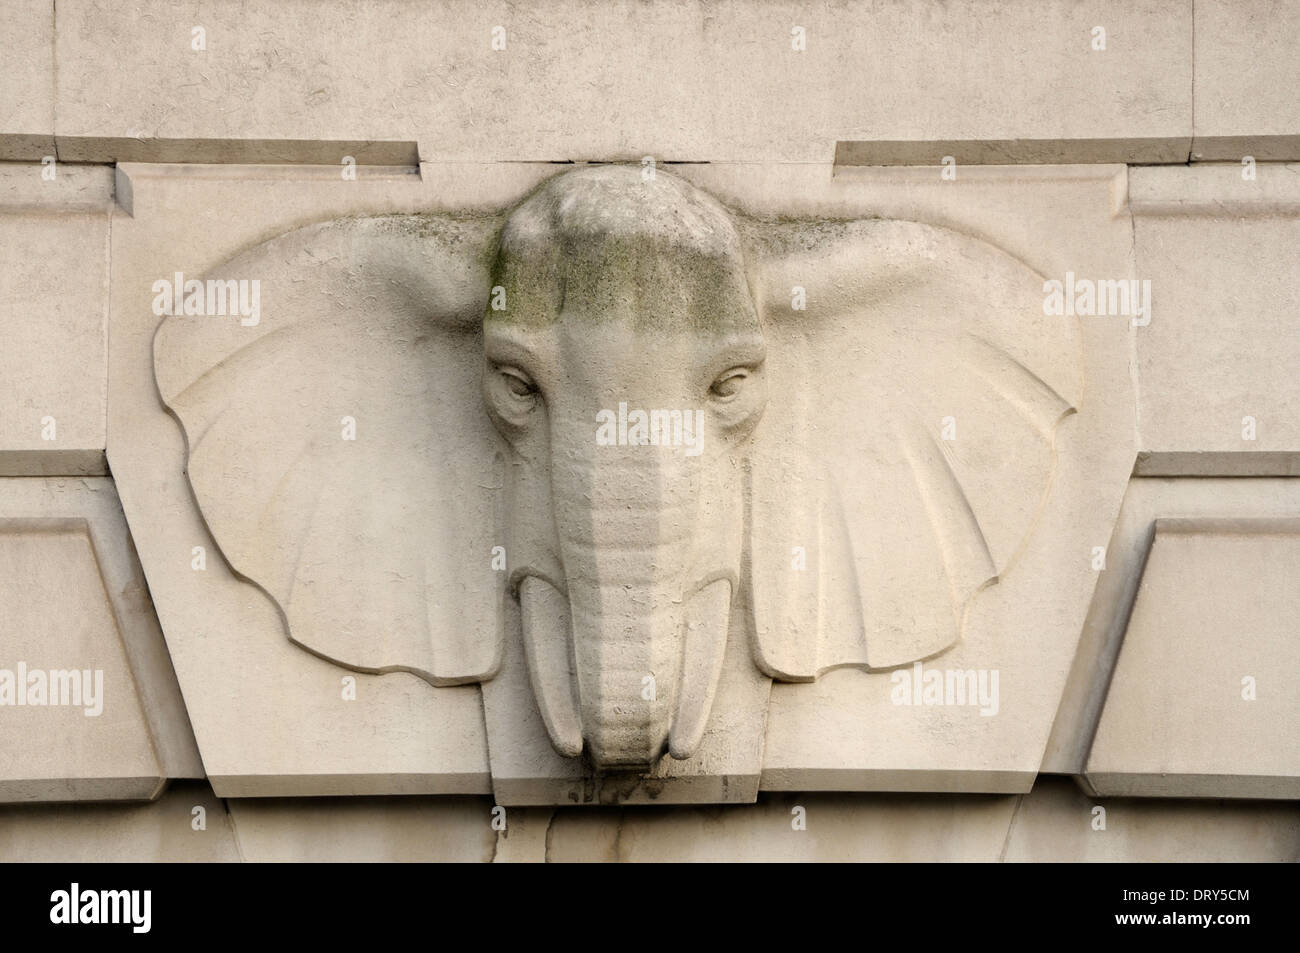 London, England, UK. Detail on the facade of South Africa House (South African High Commission), Trafalgar Square. Elephant head - Stock Image